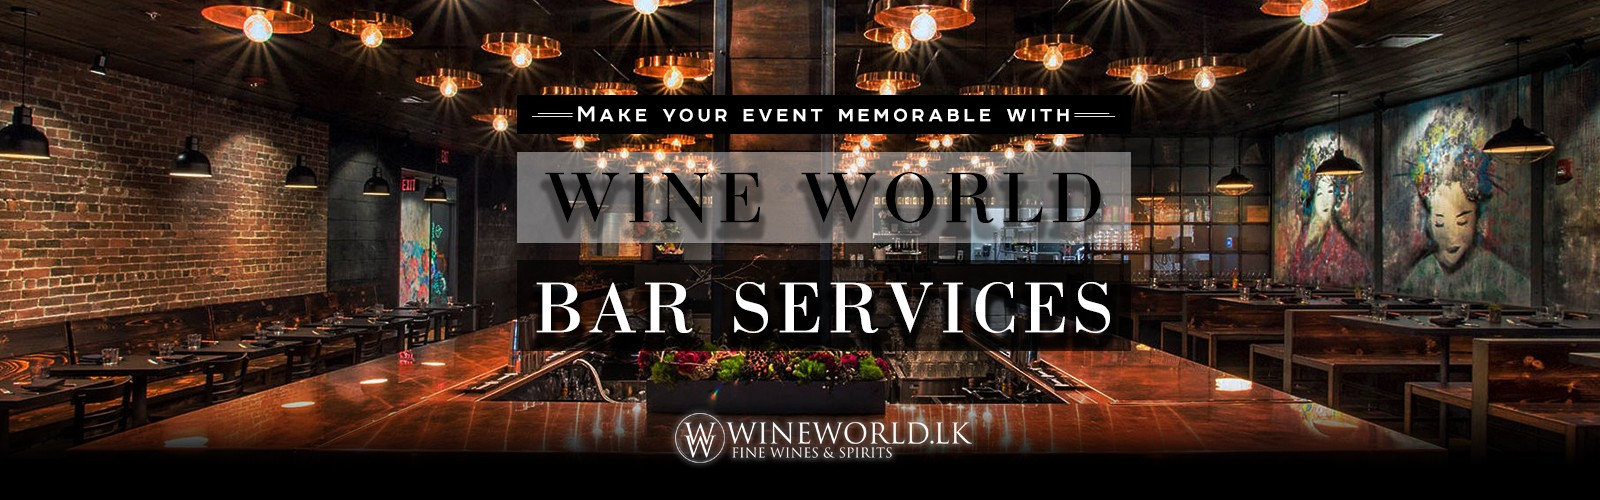 Win A FREE Beautiful Bar Set Up With 2 Bartenders For Your Wedding Or Event